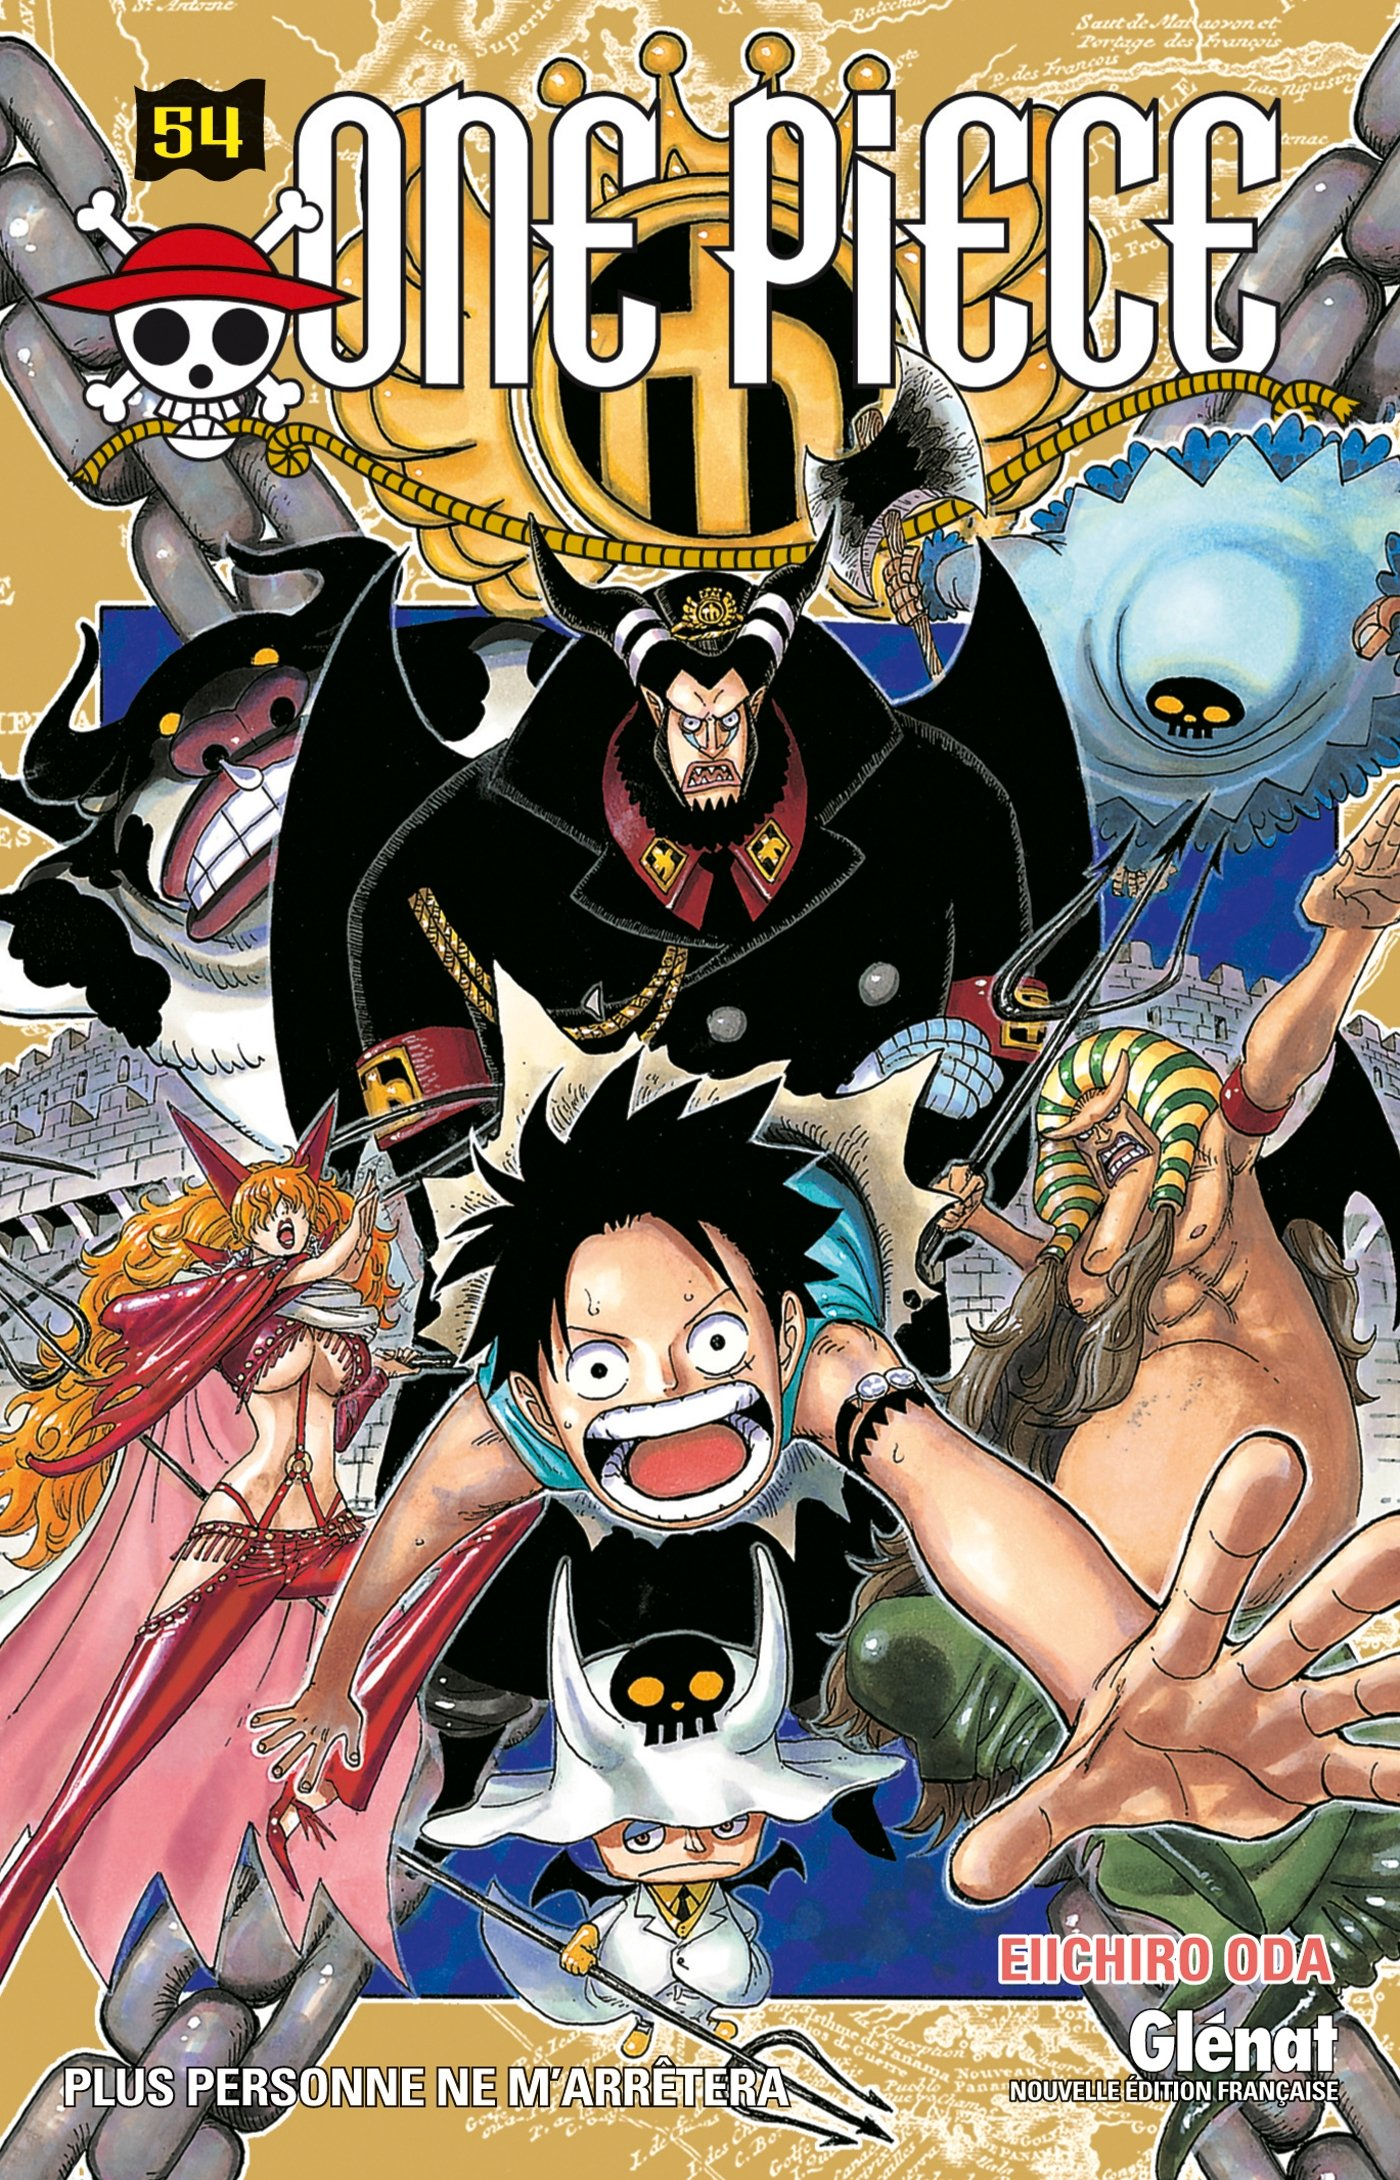 Download One piece - Édition originale Tome 54 (French Edition) ebook